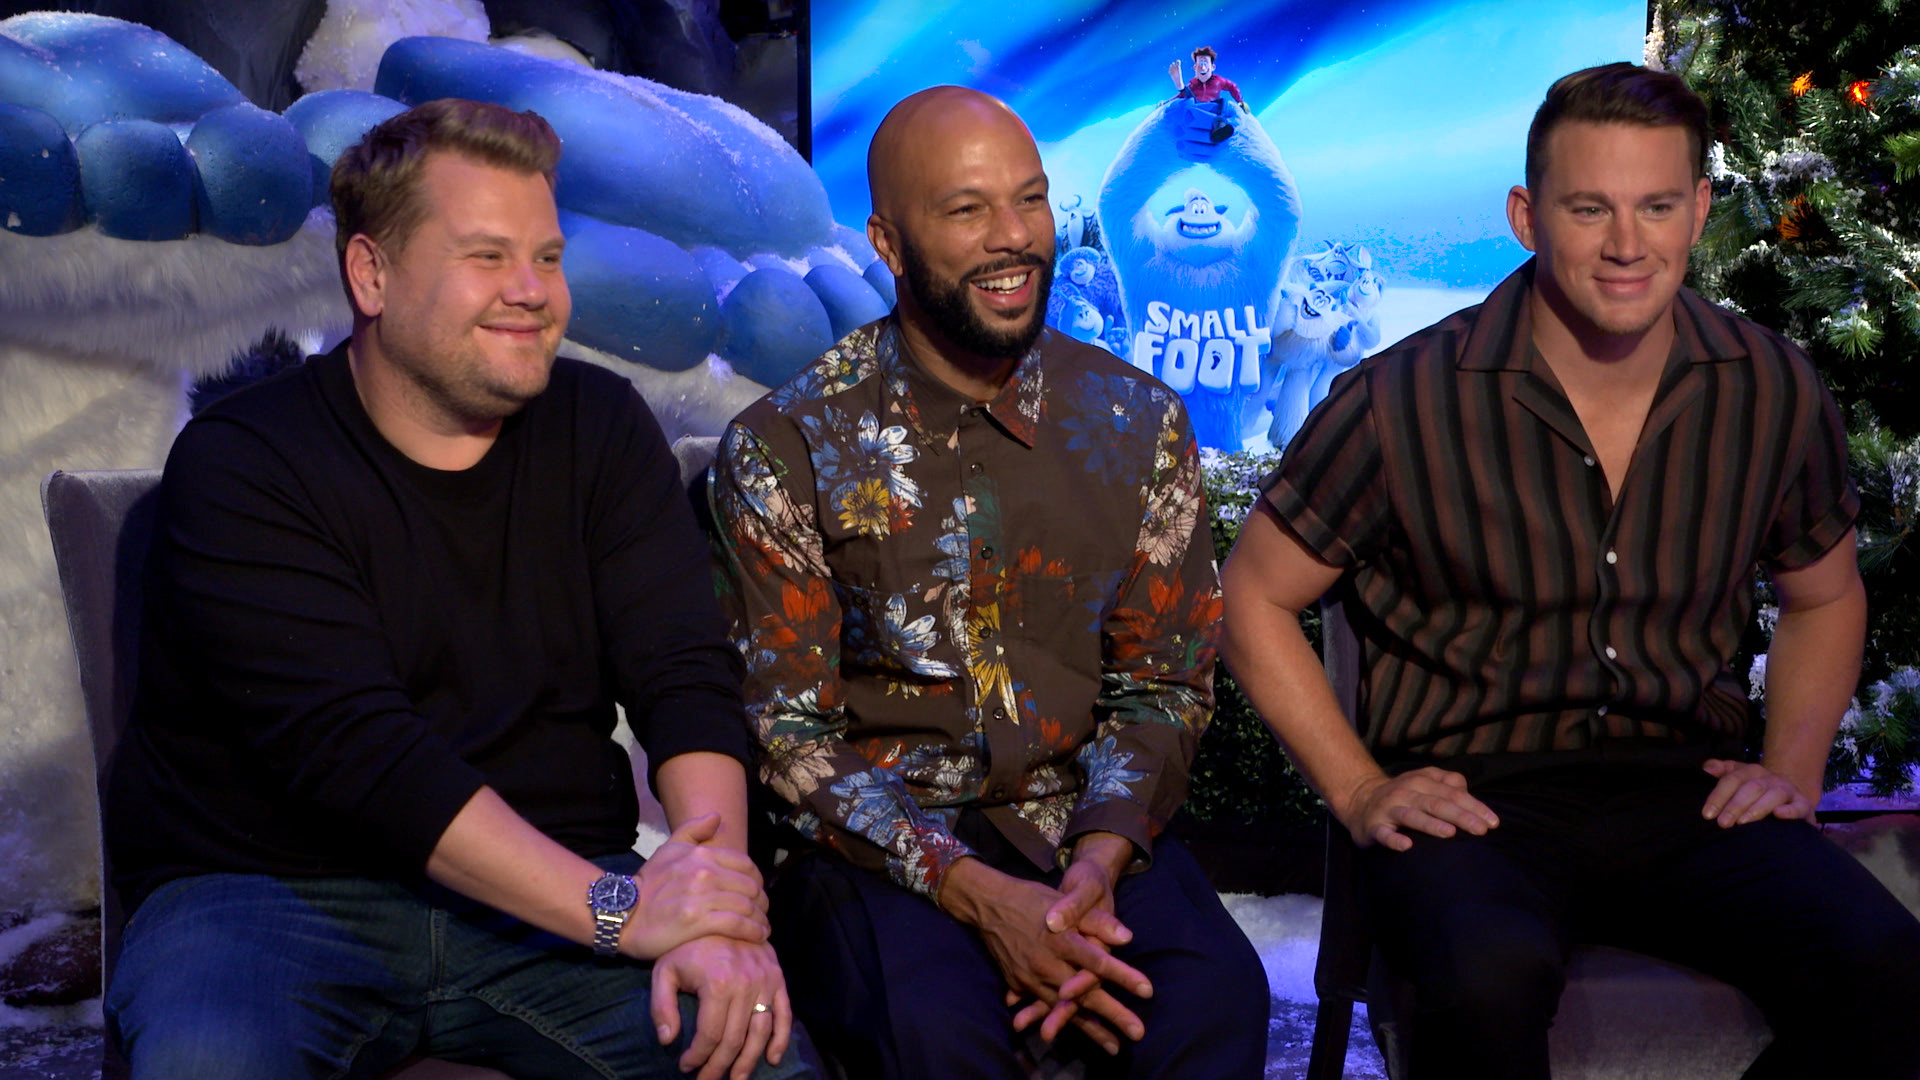 Channing Tatum, Common, and James Corden talk singing in 'Smallfoot'